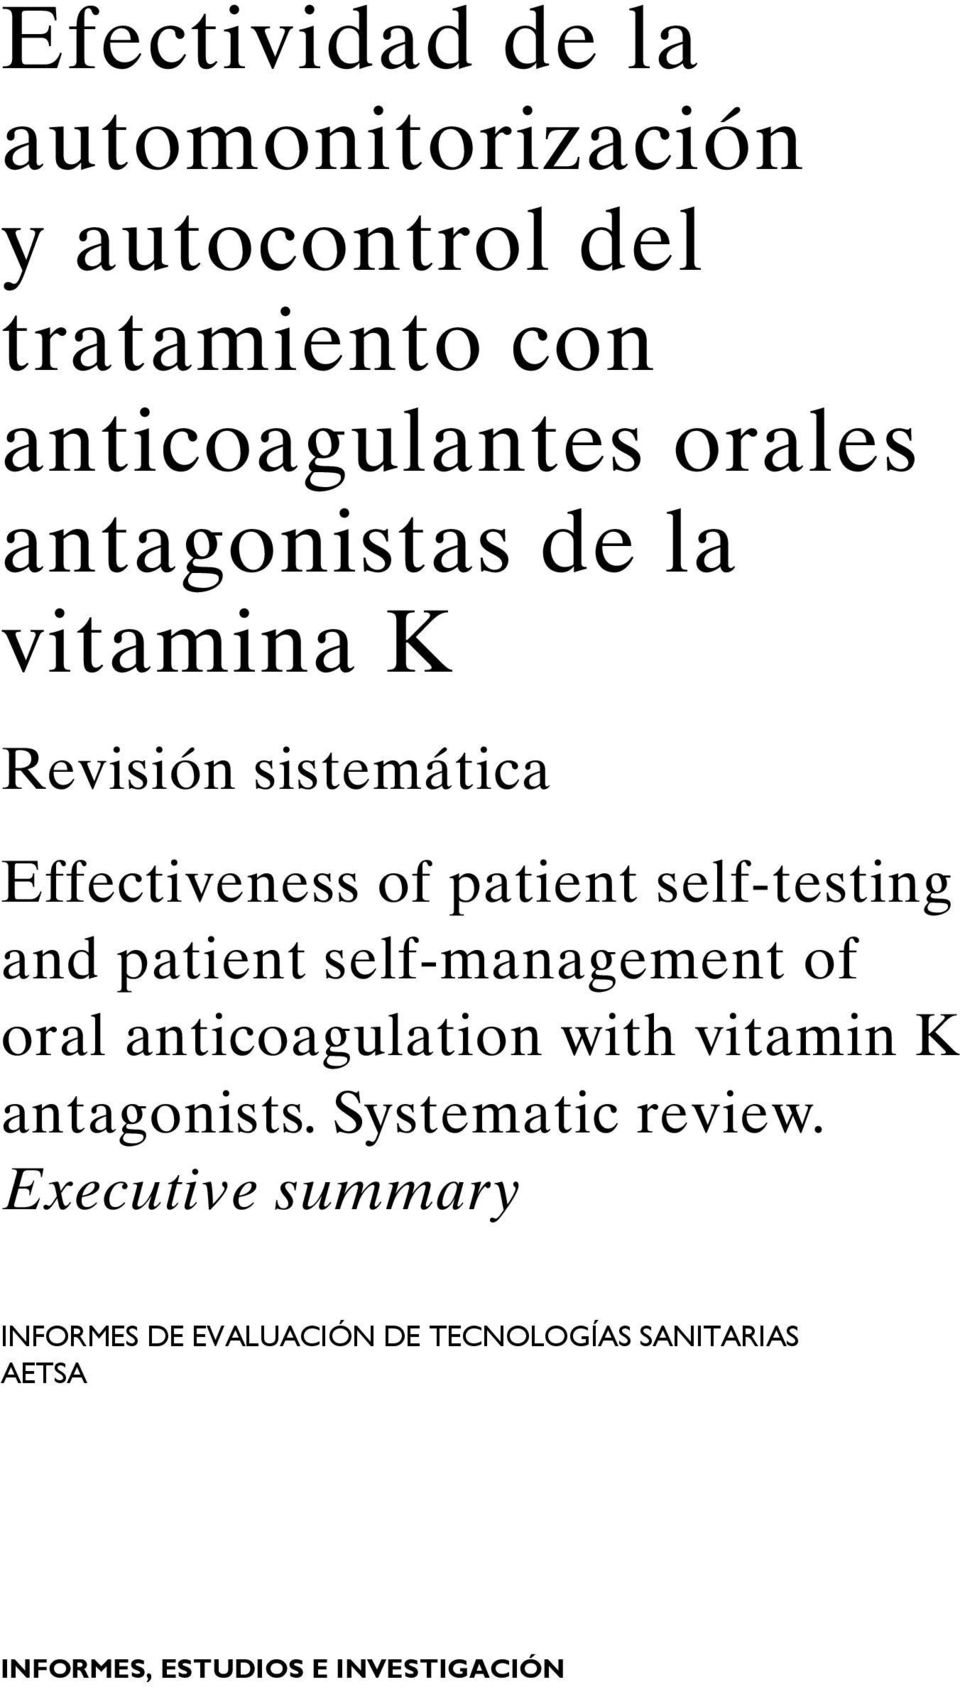 patient self-management of oral anticoagulation with vitamin K antagonists. Systematic review.